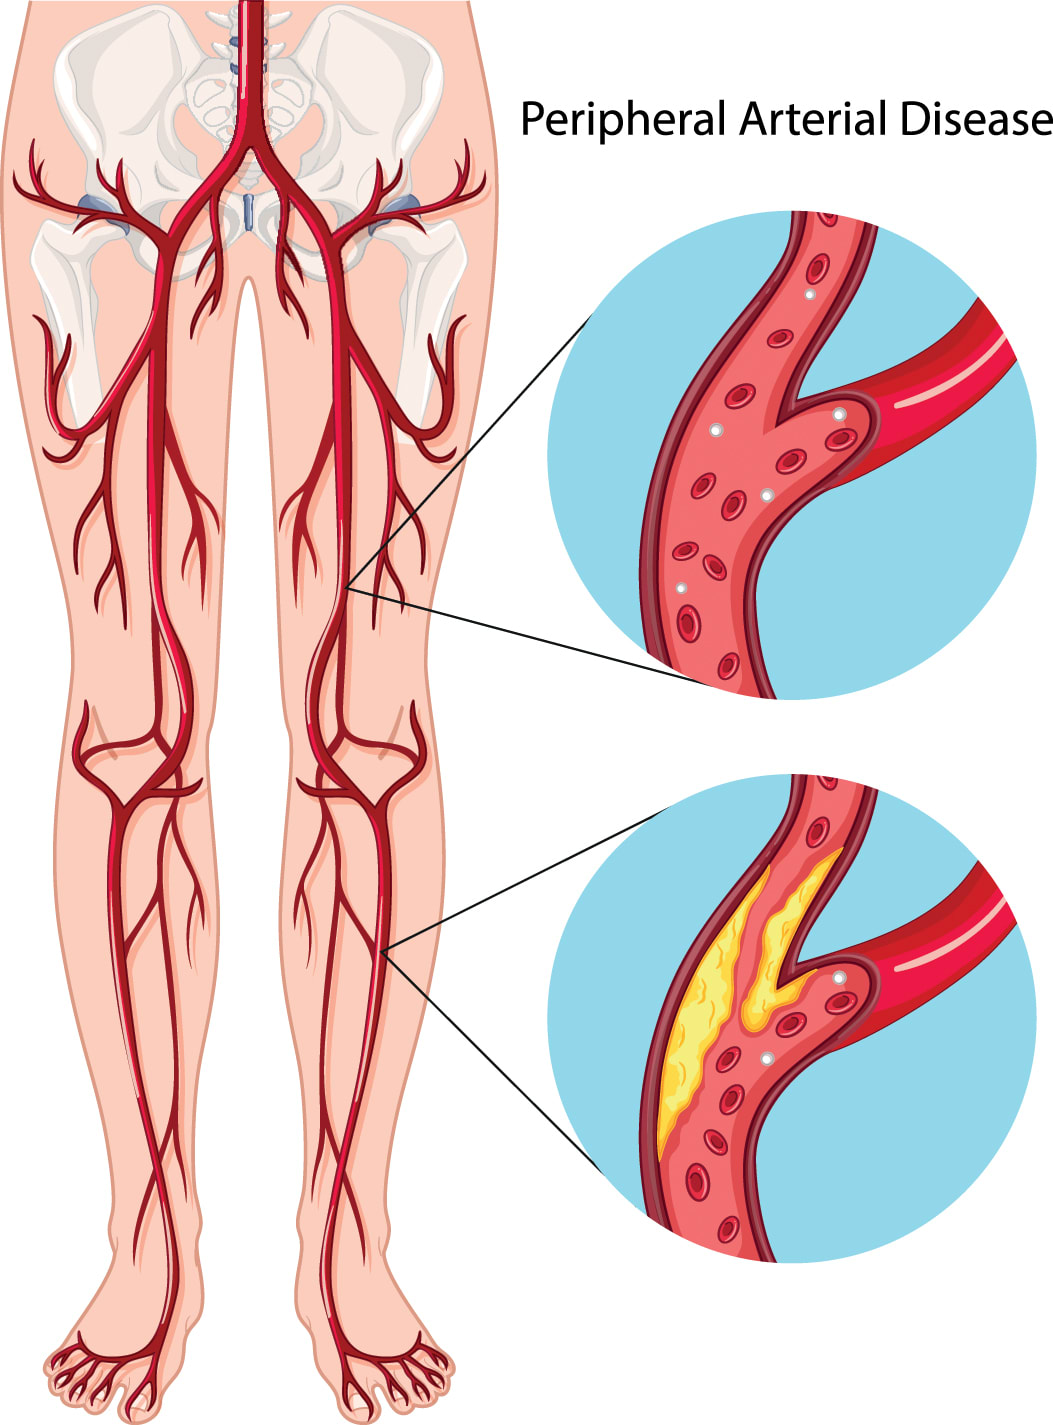 Peripheral Artery Disease diagram (PAD)